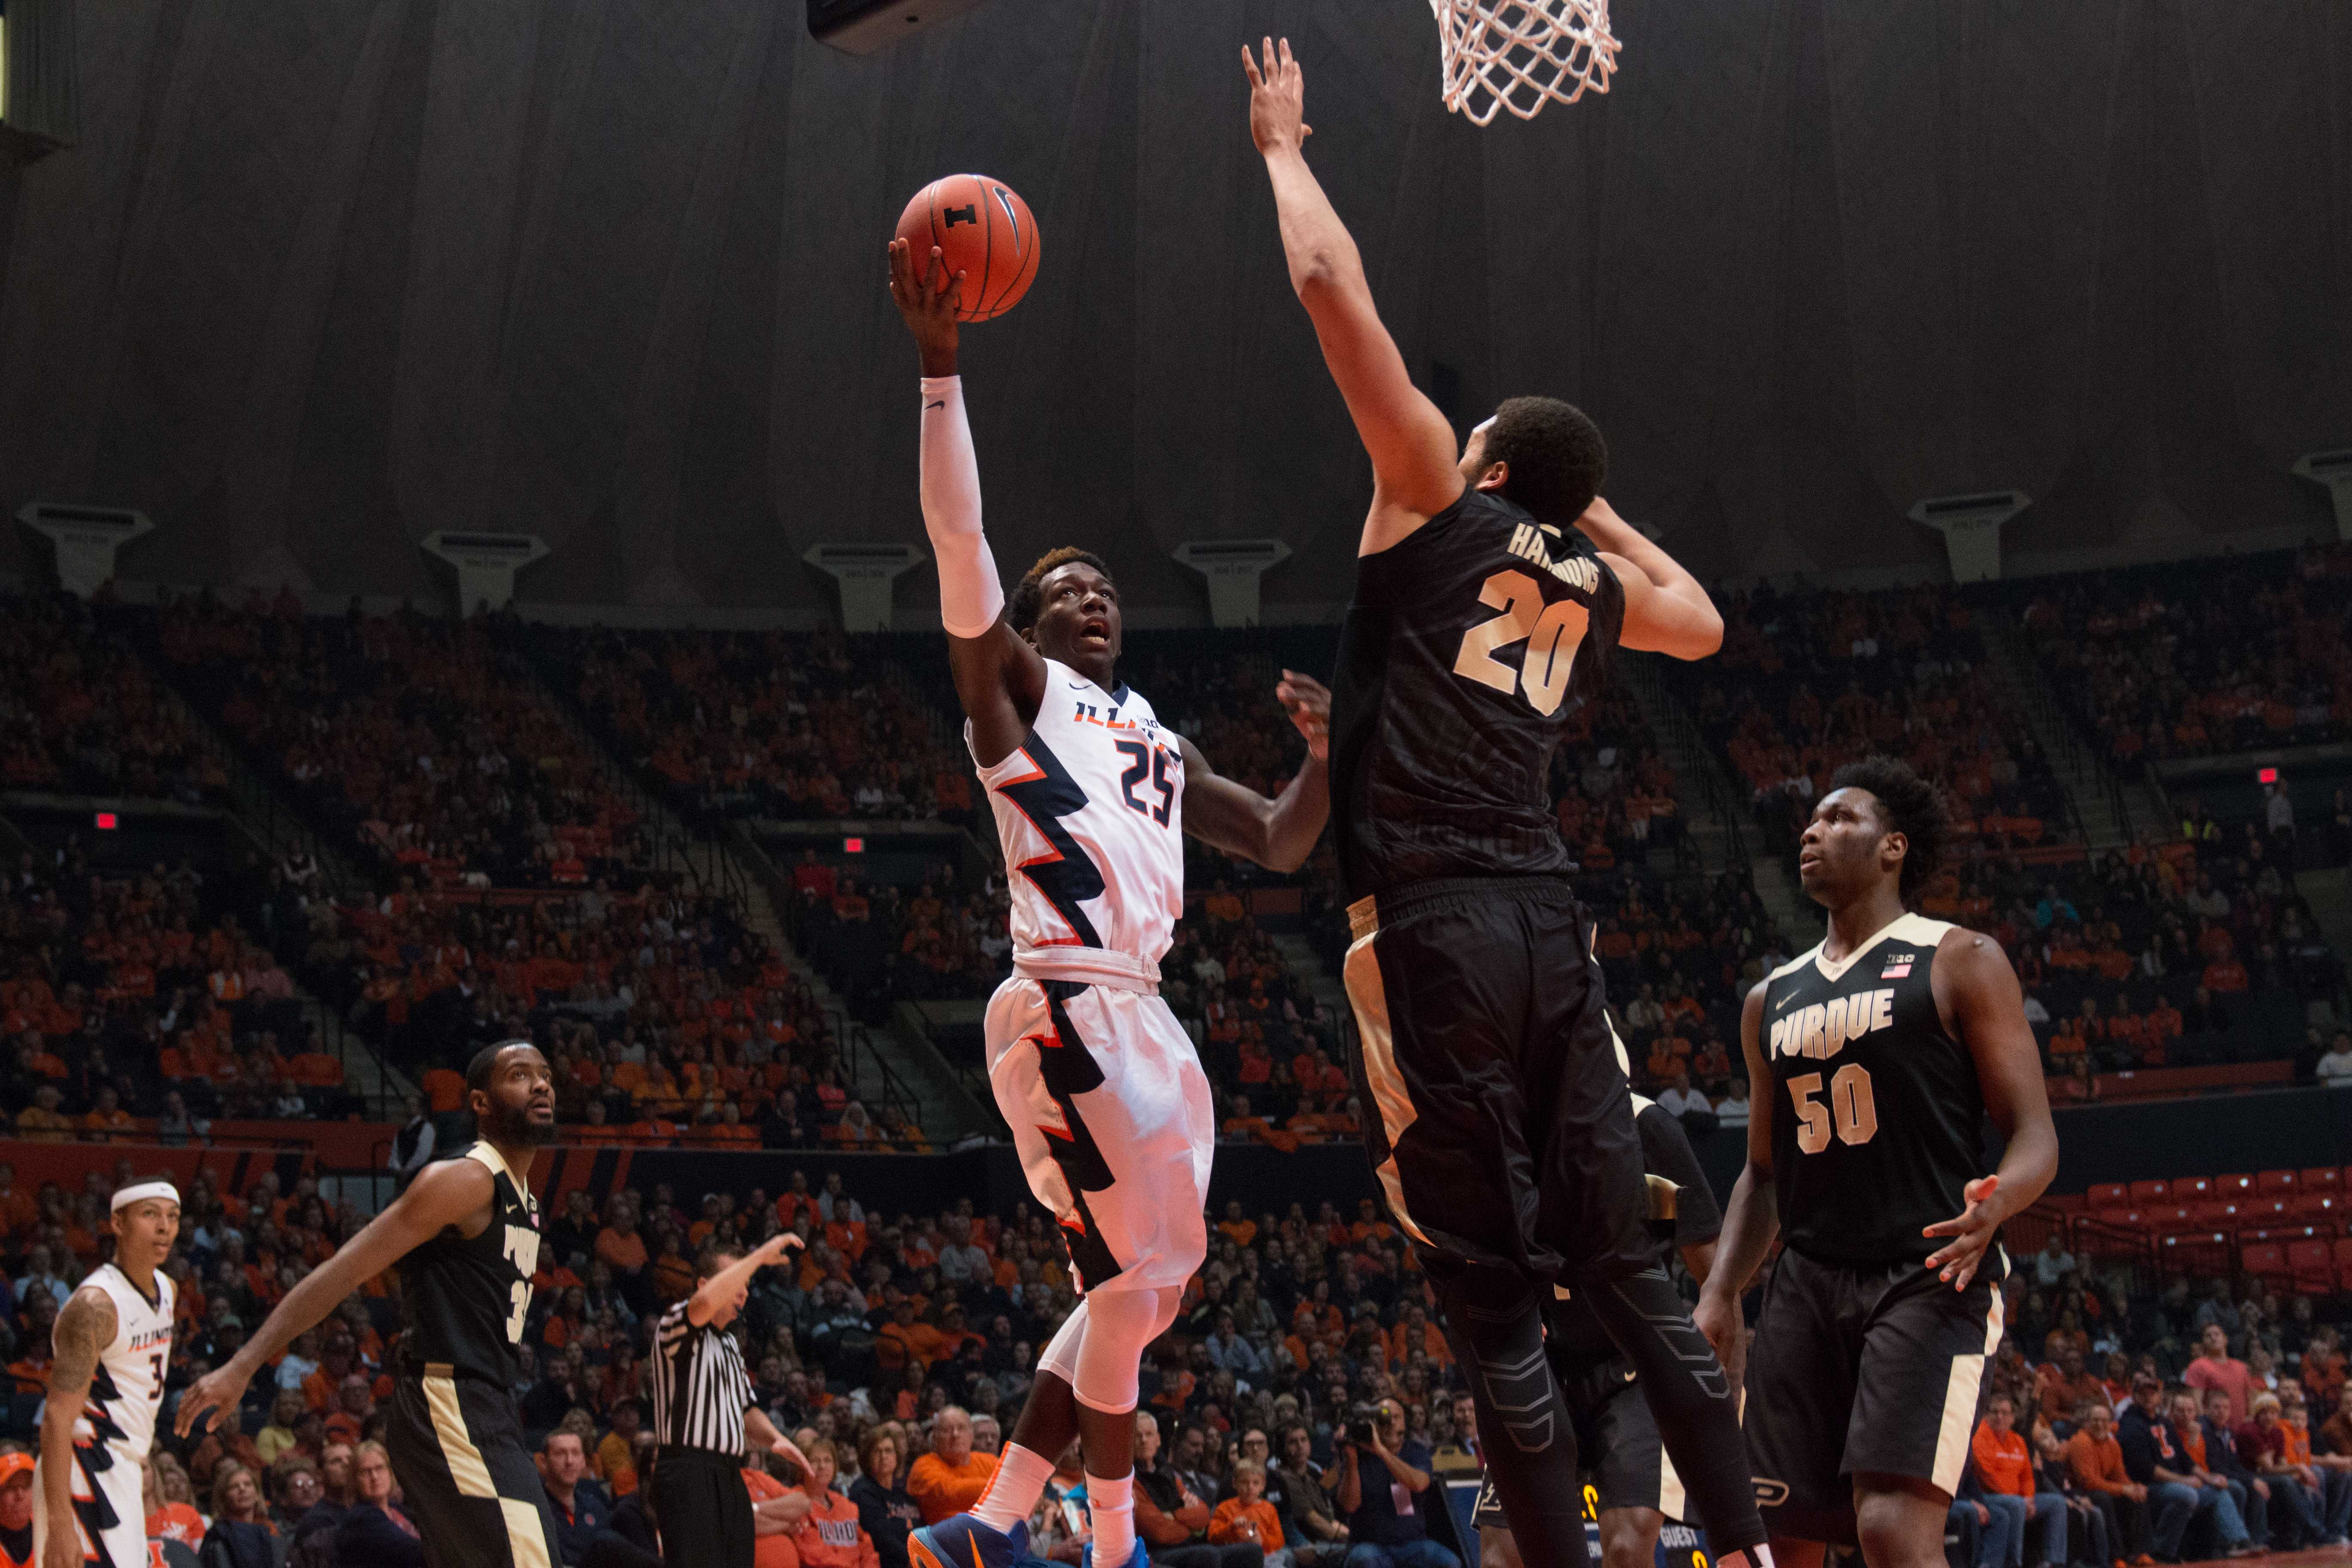 Illinois' Kendrick Nunn puts up a layup over Purdue's A.J. Hammond during the Illini's 84-70 victory over the Boilermakers at State Farm Center on Sunday. Nunn dropped 22 points in his first game back since missing time to attend the birth of his first child.